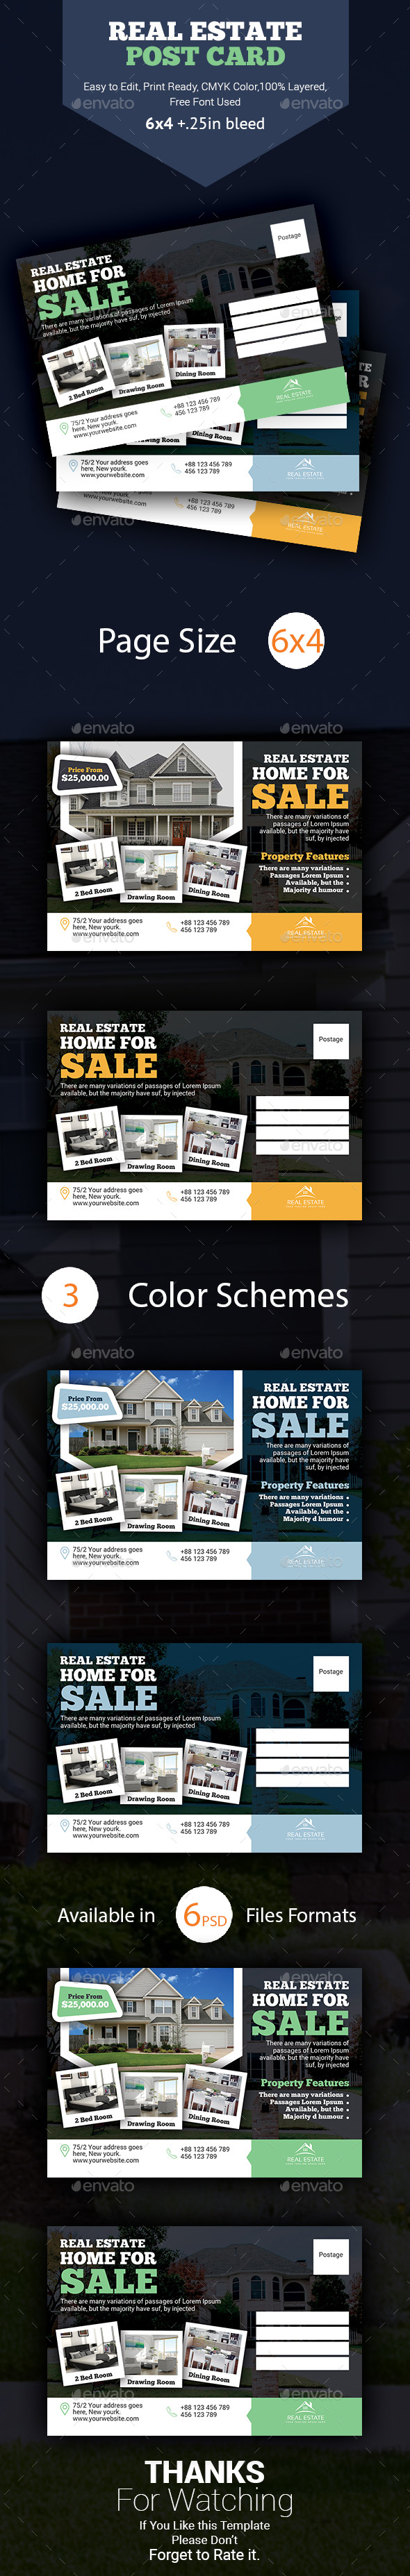 Real Estate Postcard Template - Cards & Invites Print Templates